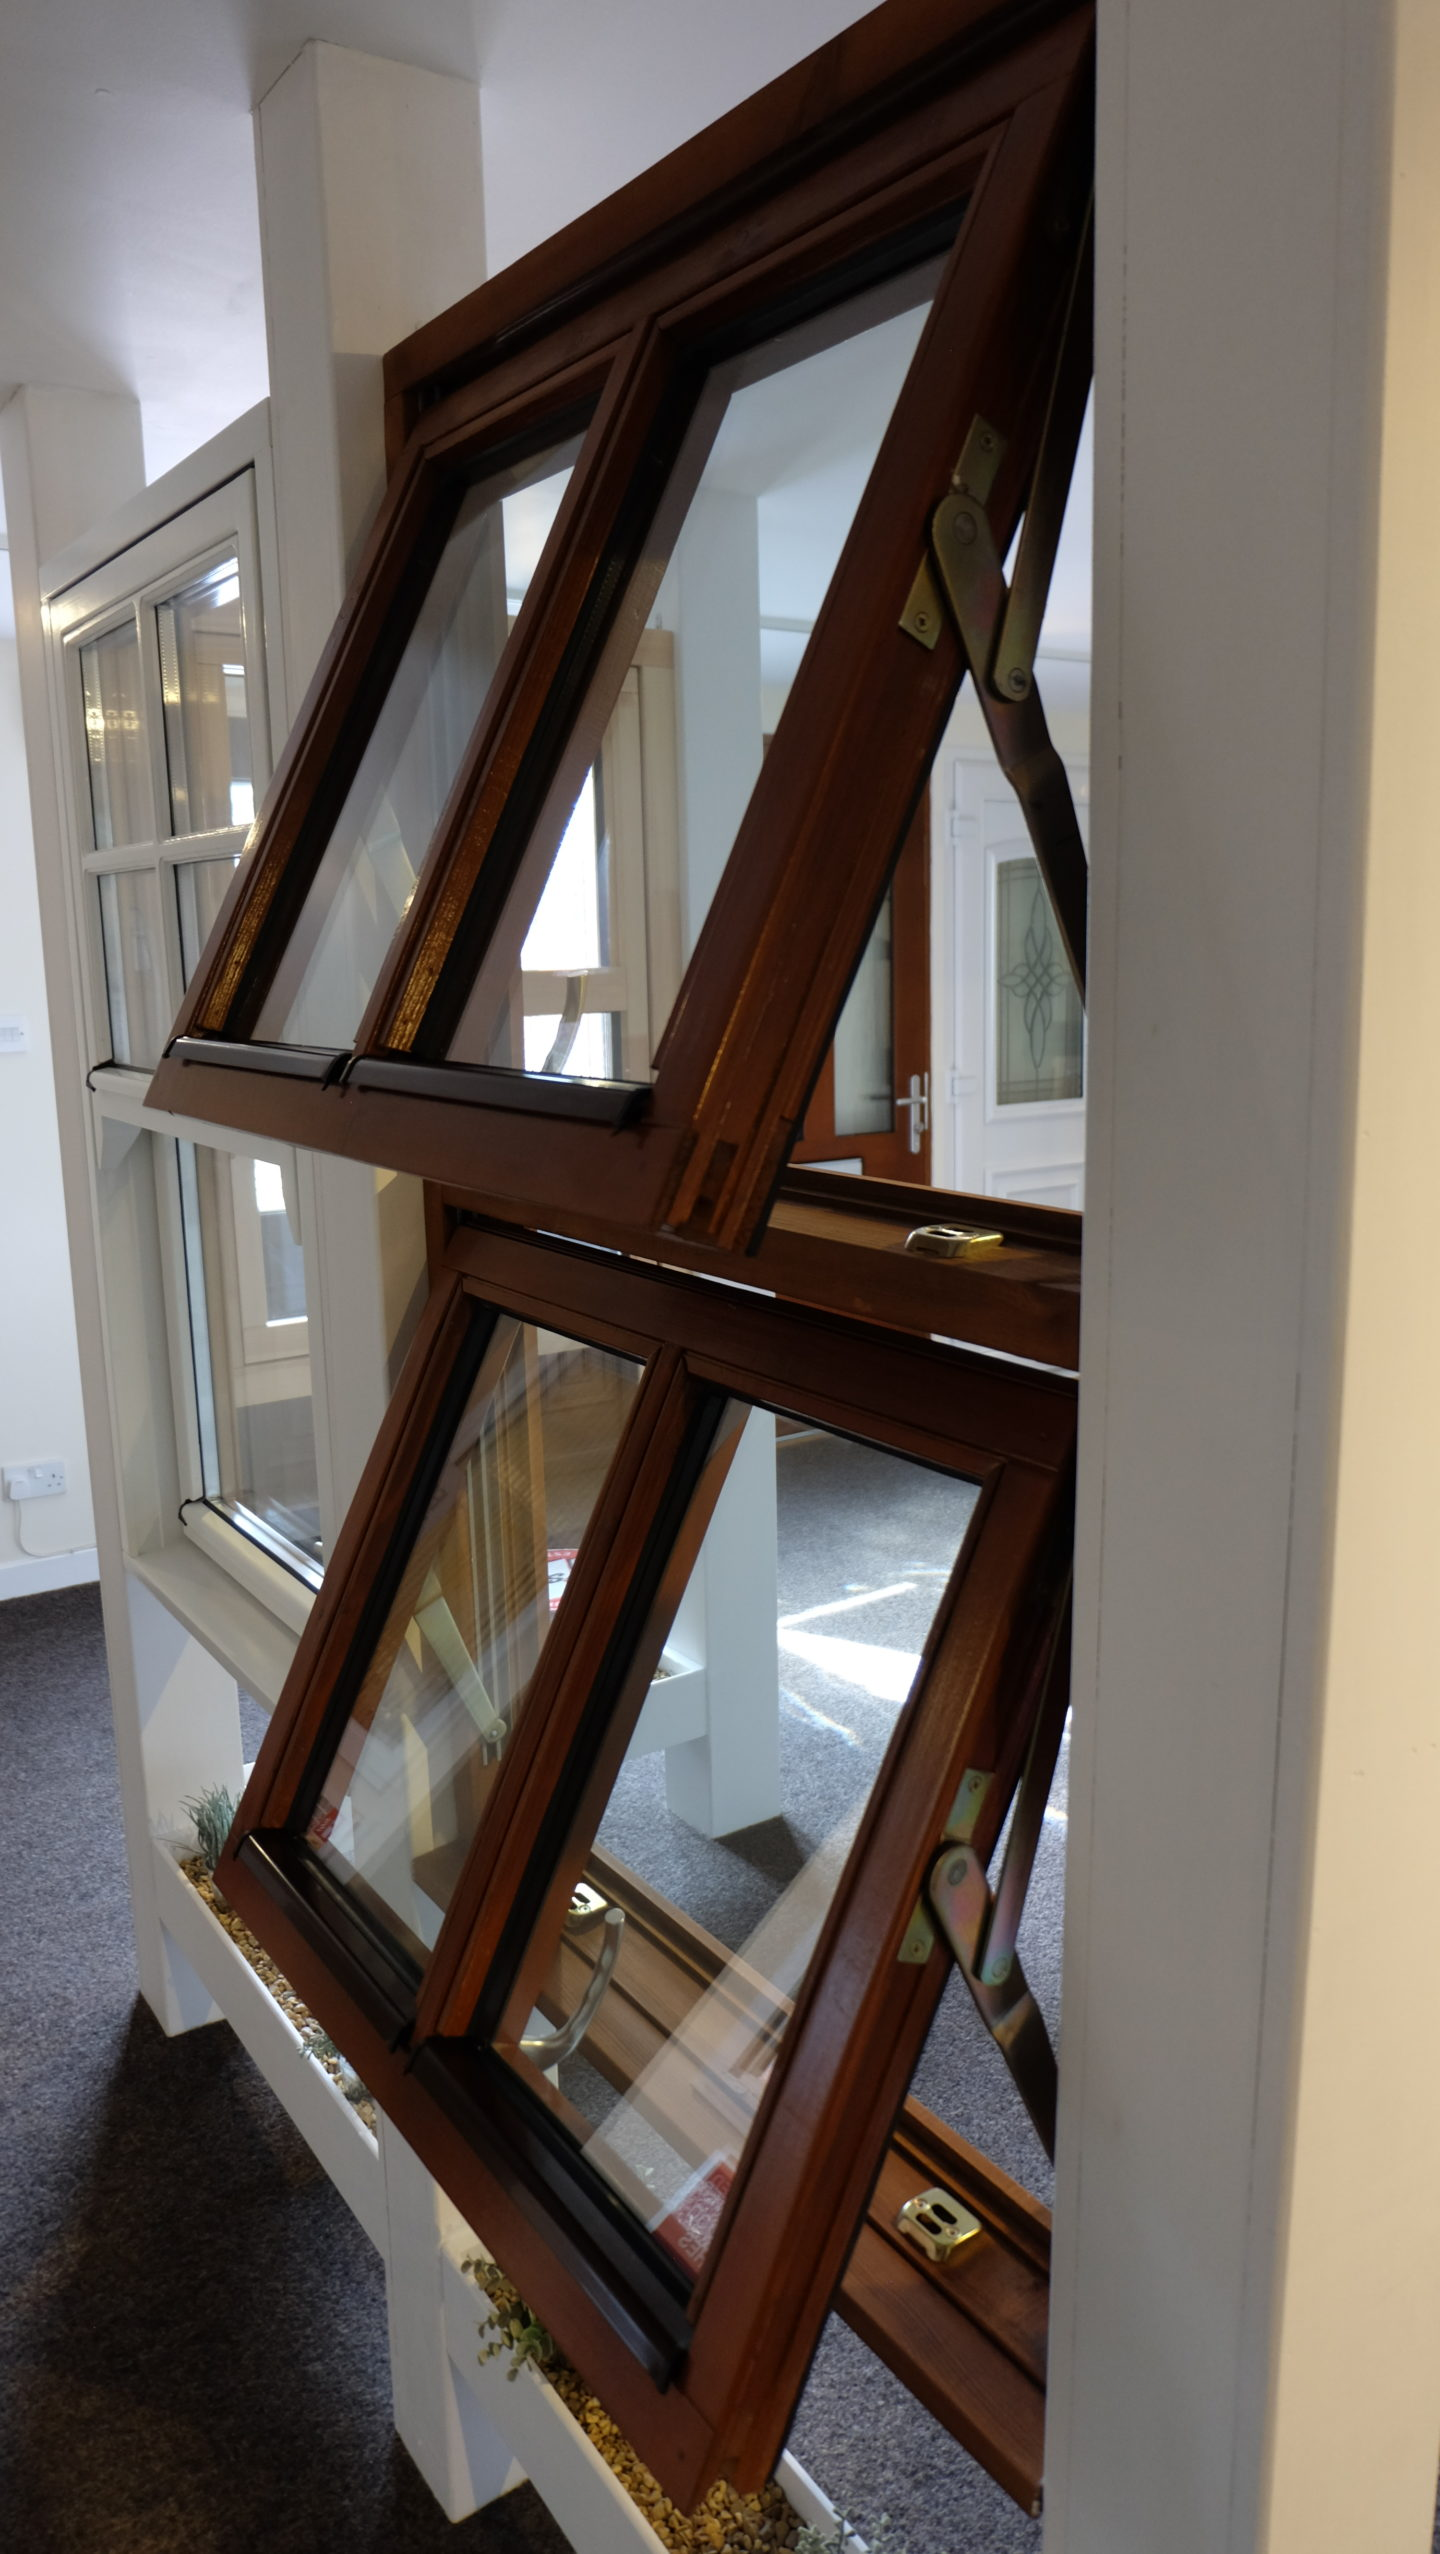 Timber Dual Swing Window Specification